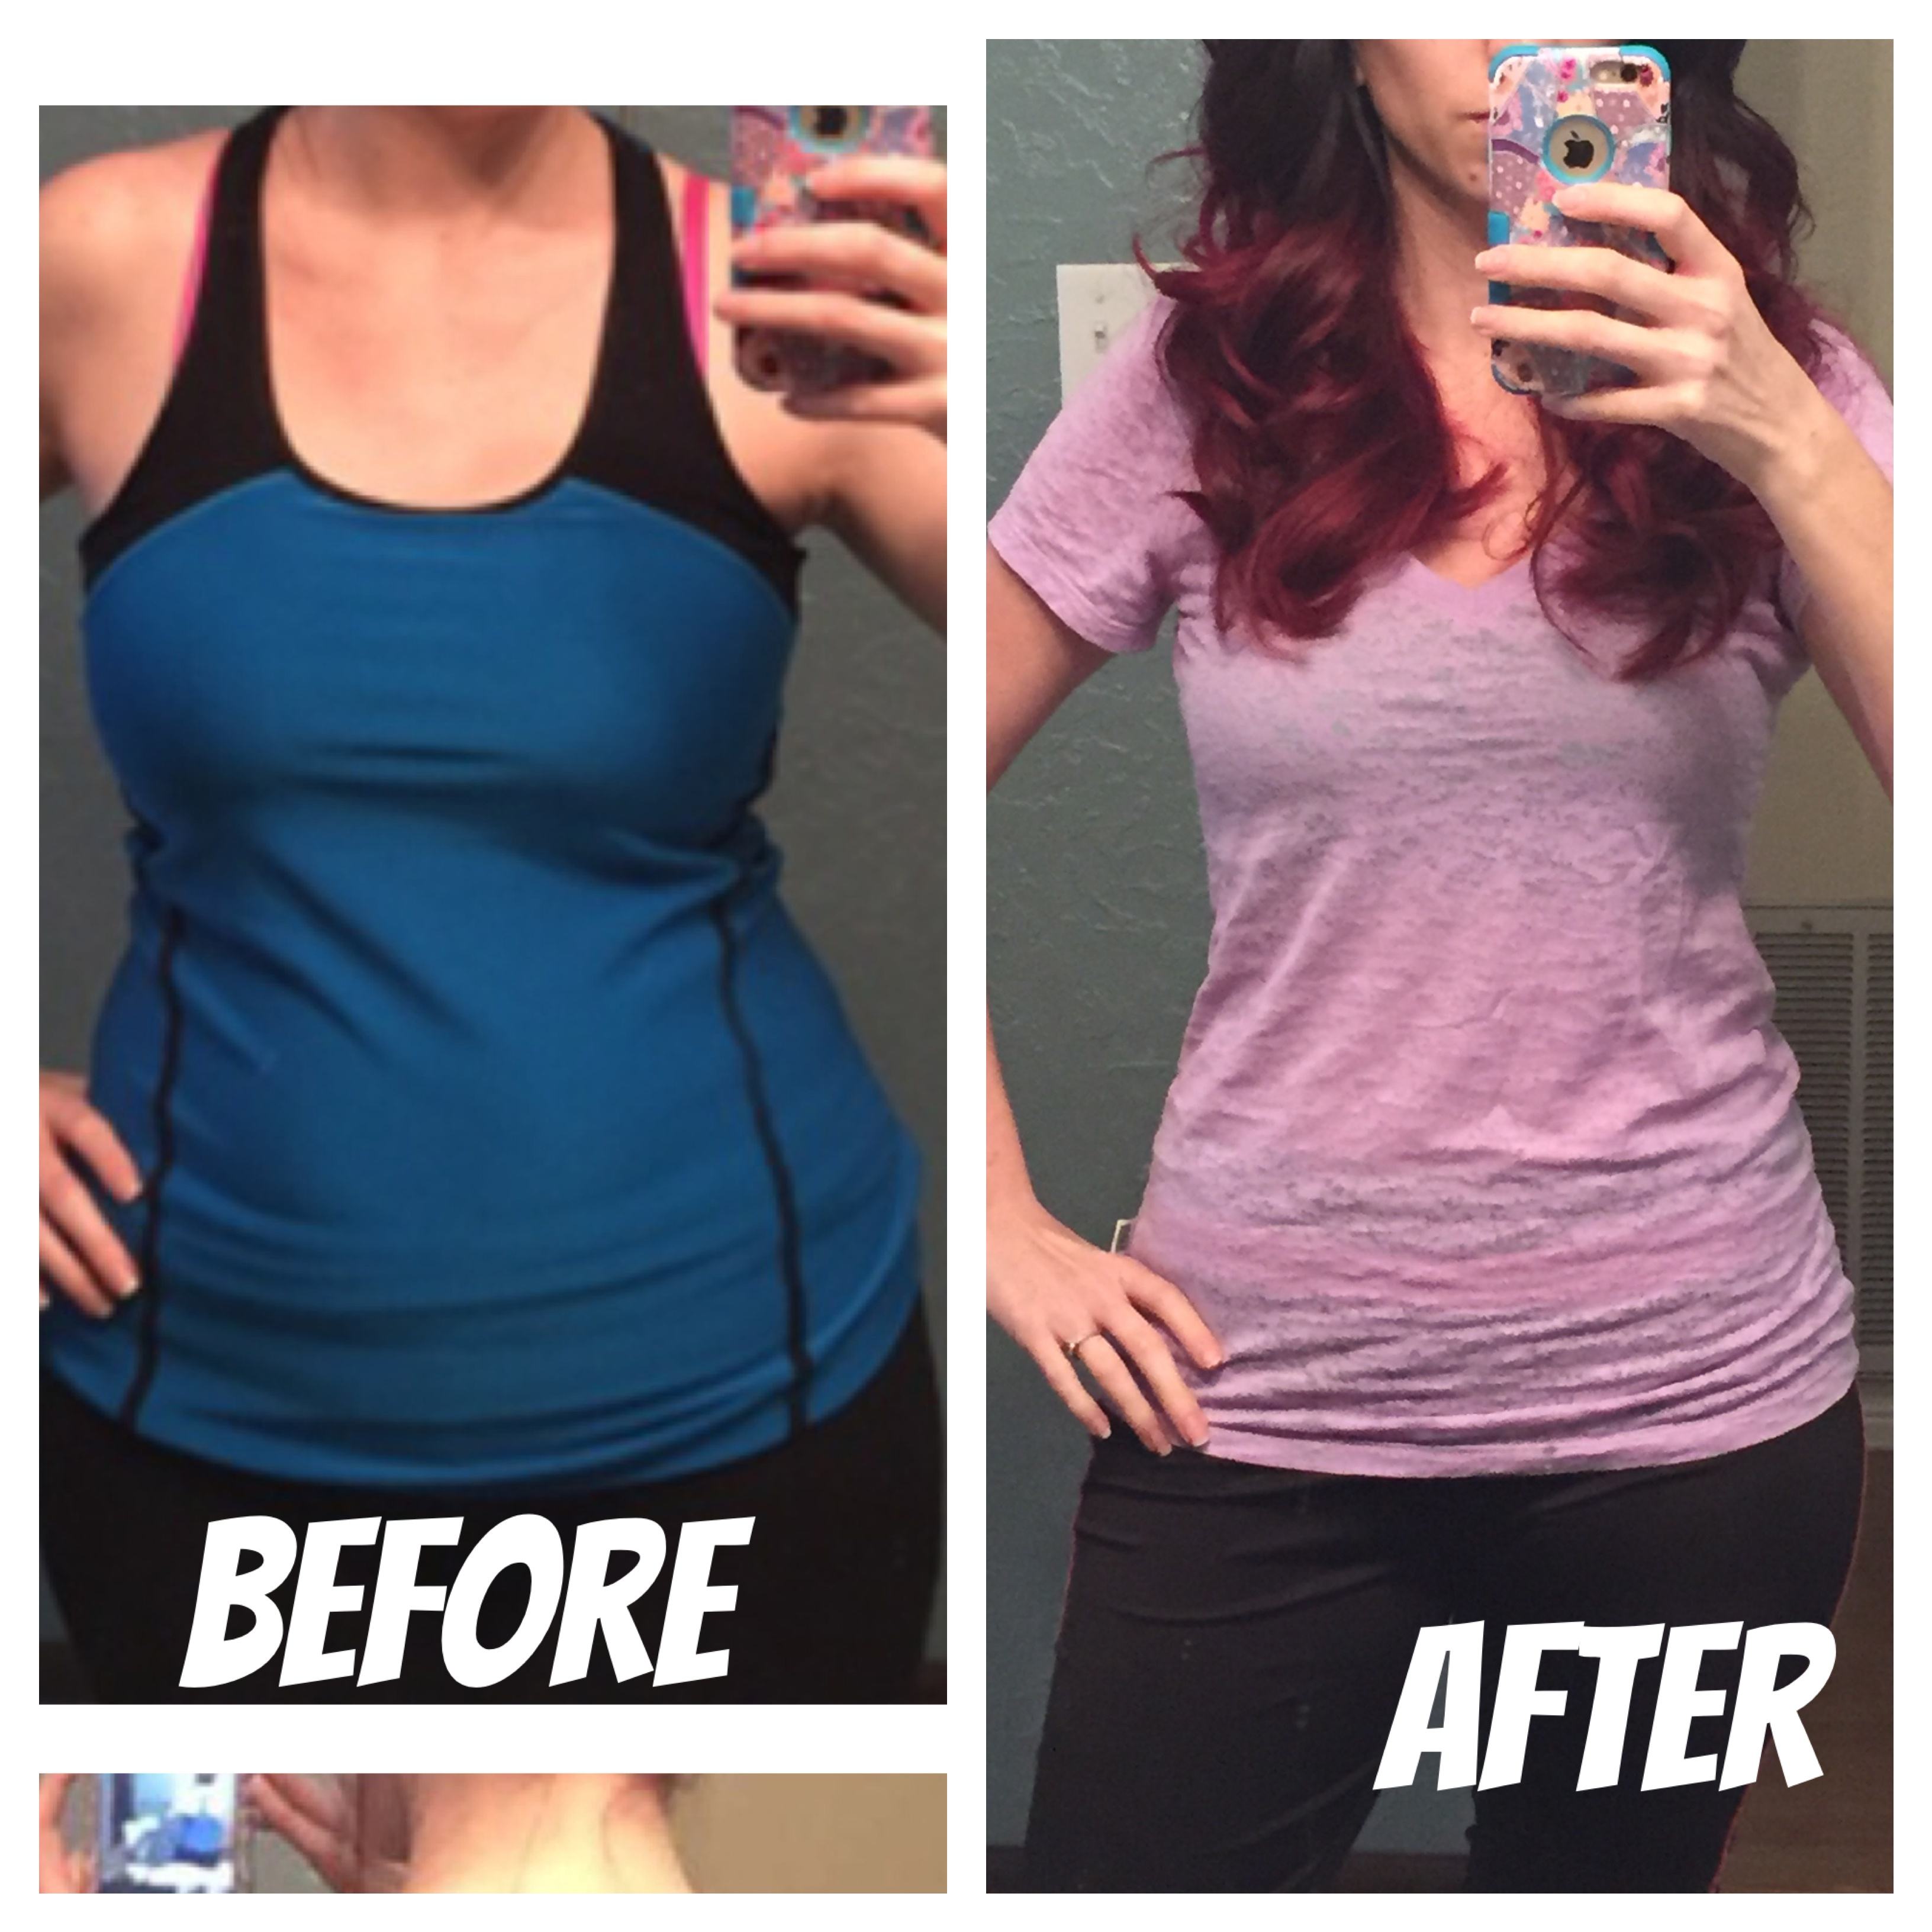 Its amazing to me the results I saw in such a short time!